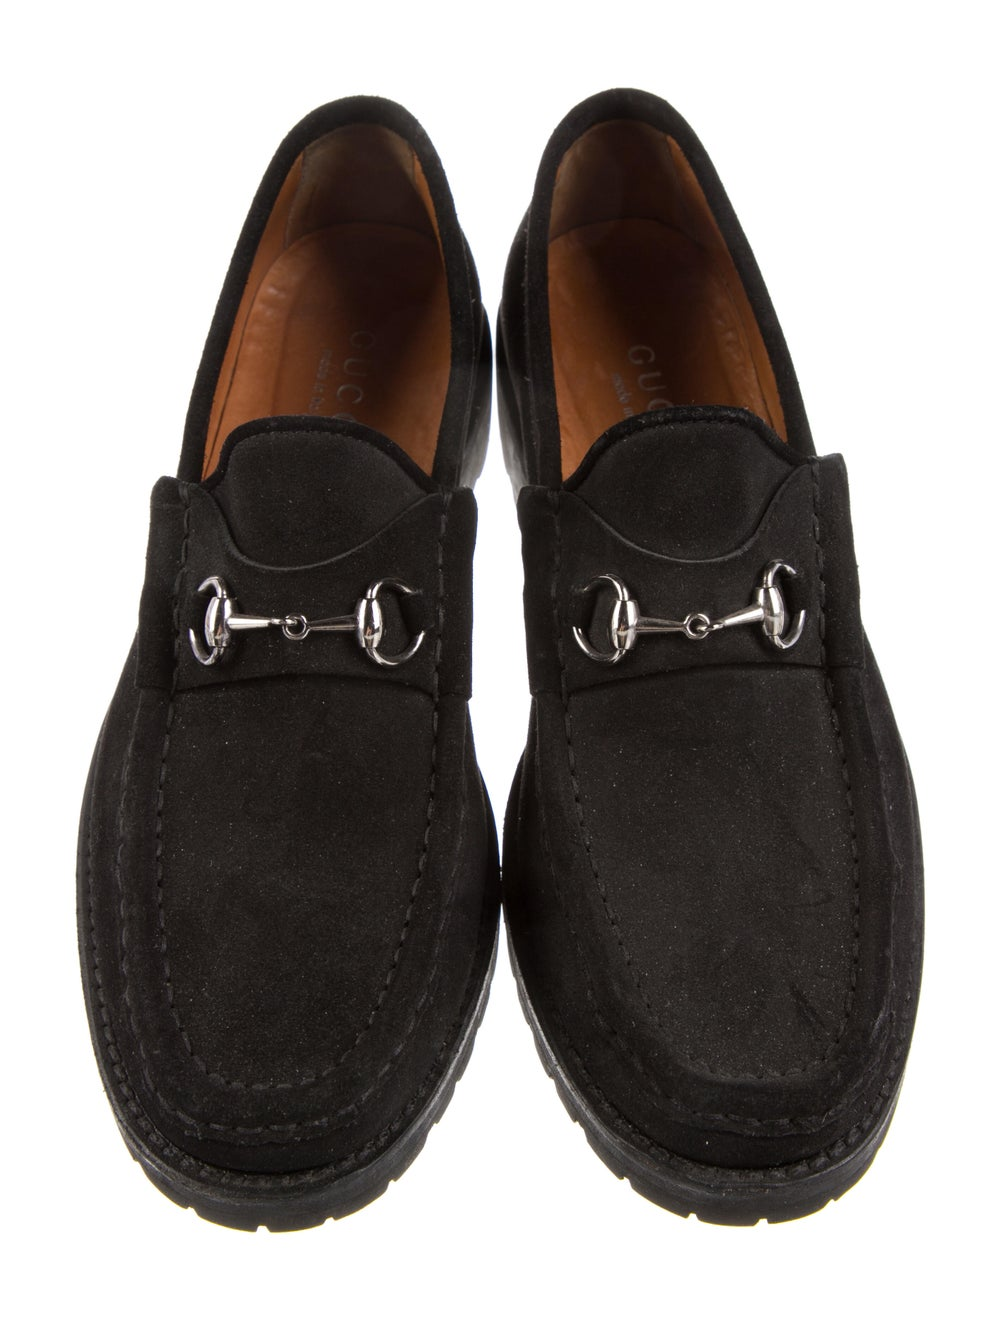 Gucci 1955 Horsebit Accent Suede Loafers Black - image 3